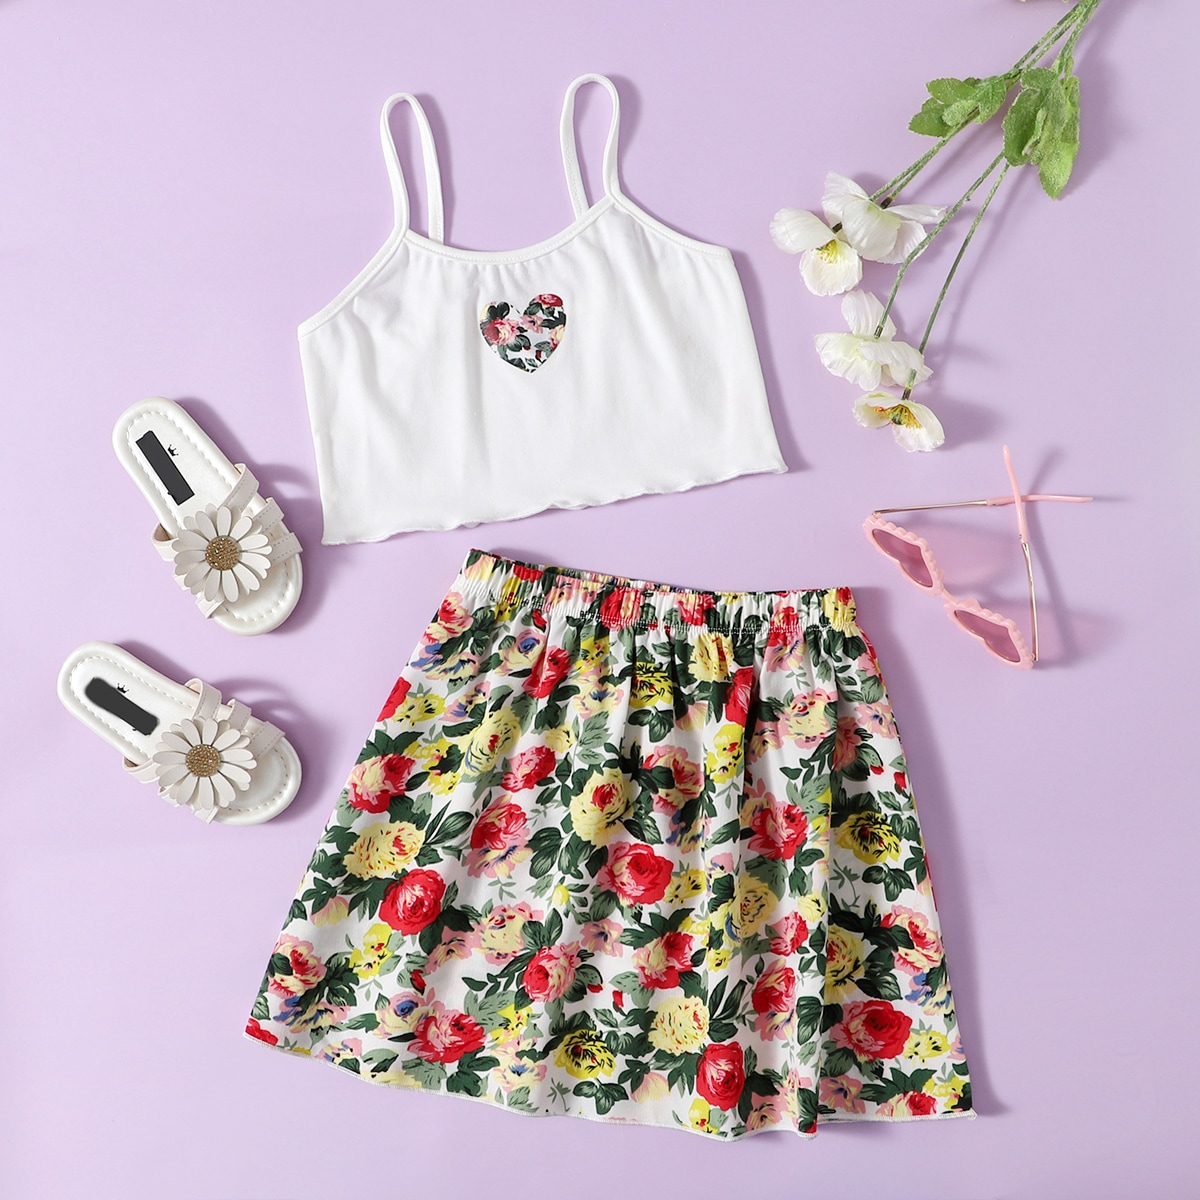 Toddler Girls Heart Print Cami Top & Floral Skirt, SHEIN  - buy with discount